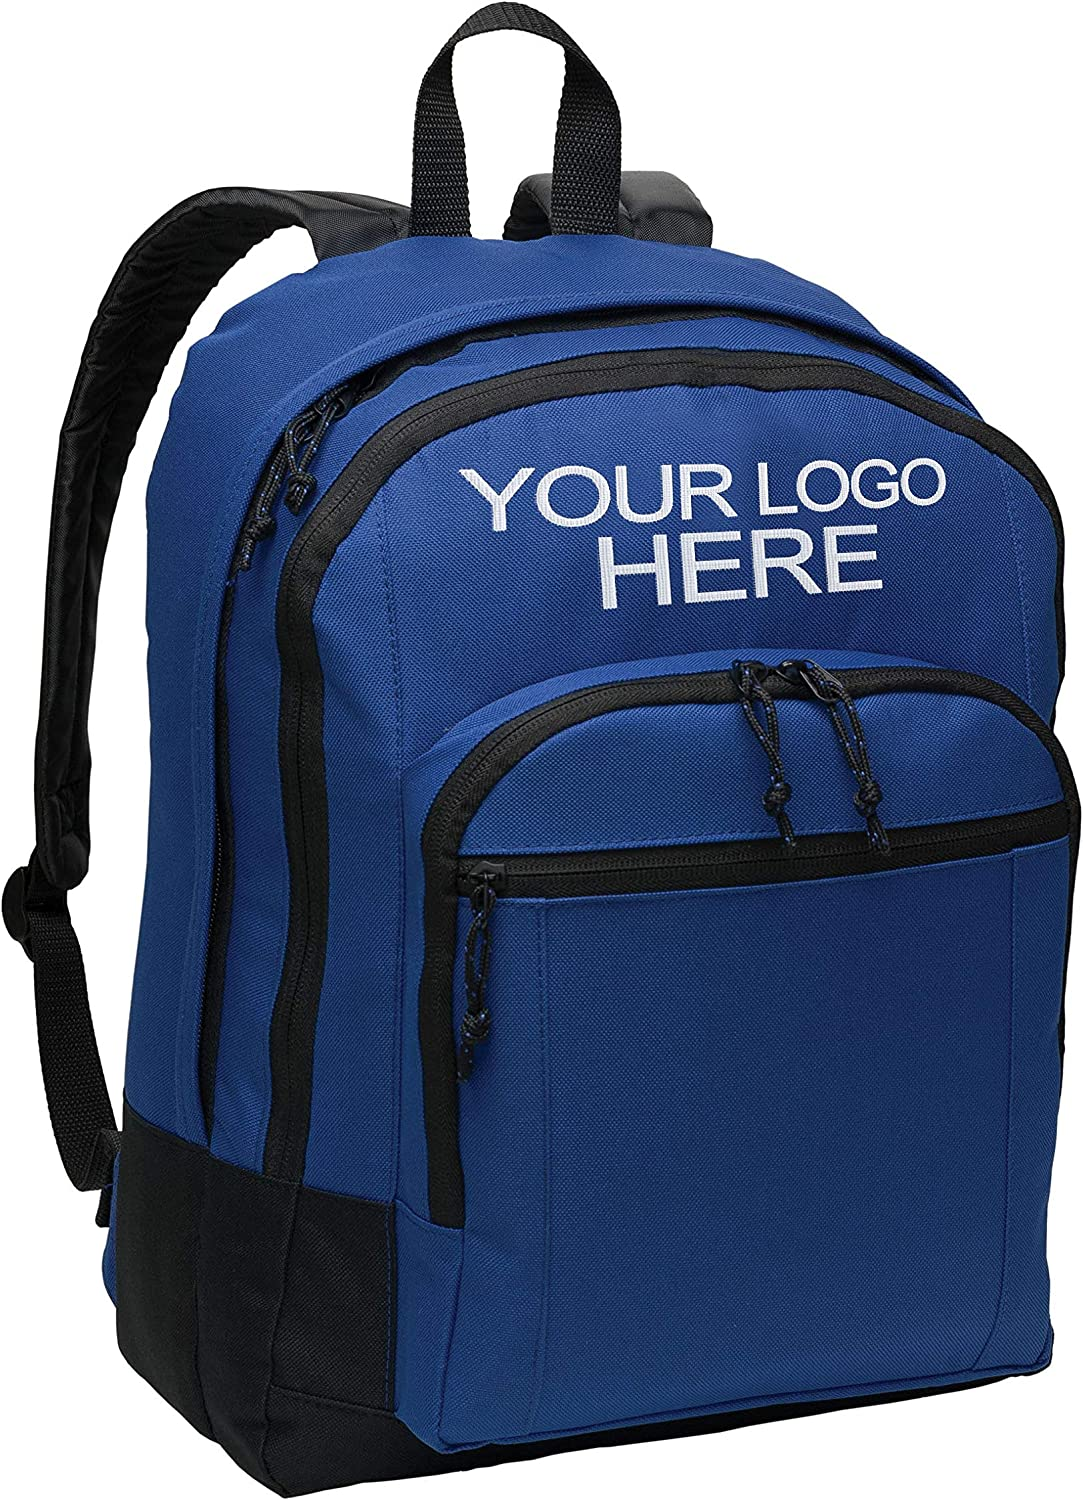 Personalized Customized Basic Classic Twilight Blue School Backpack for Teen Girls and Boys - Add Your Embroidered Logo